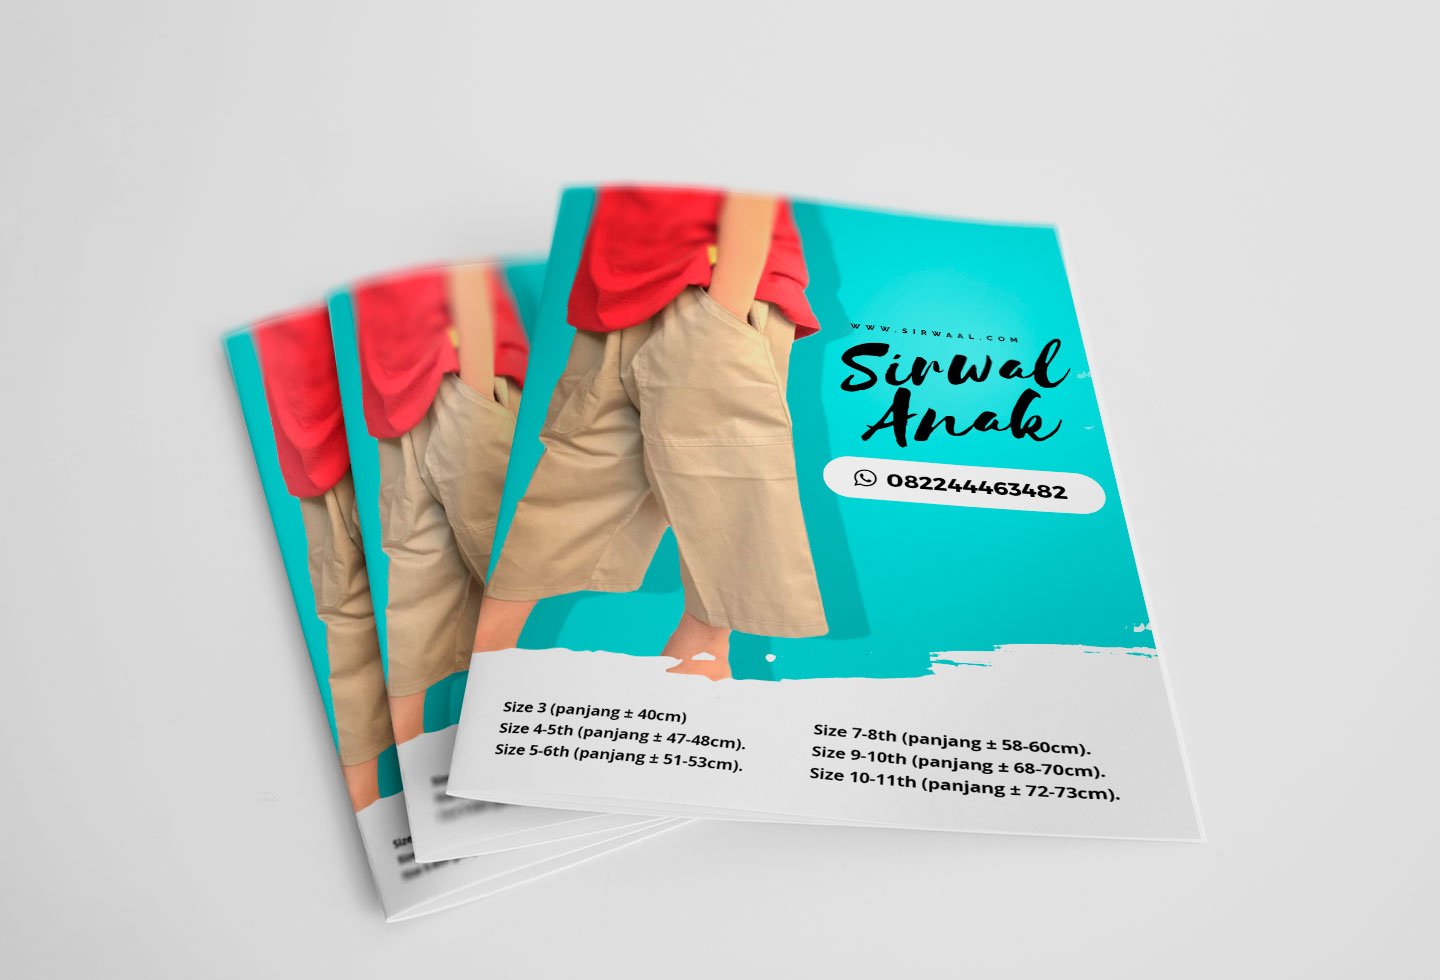 A5 One-sheet Brochure